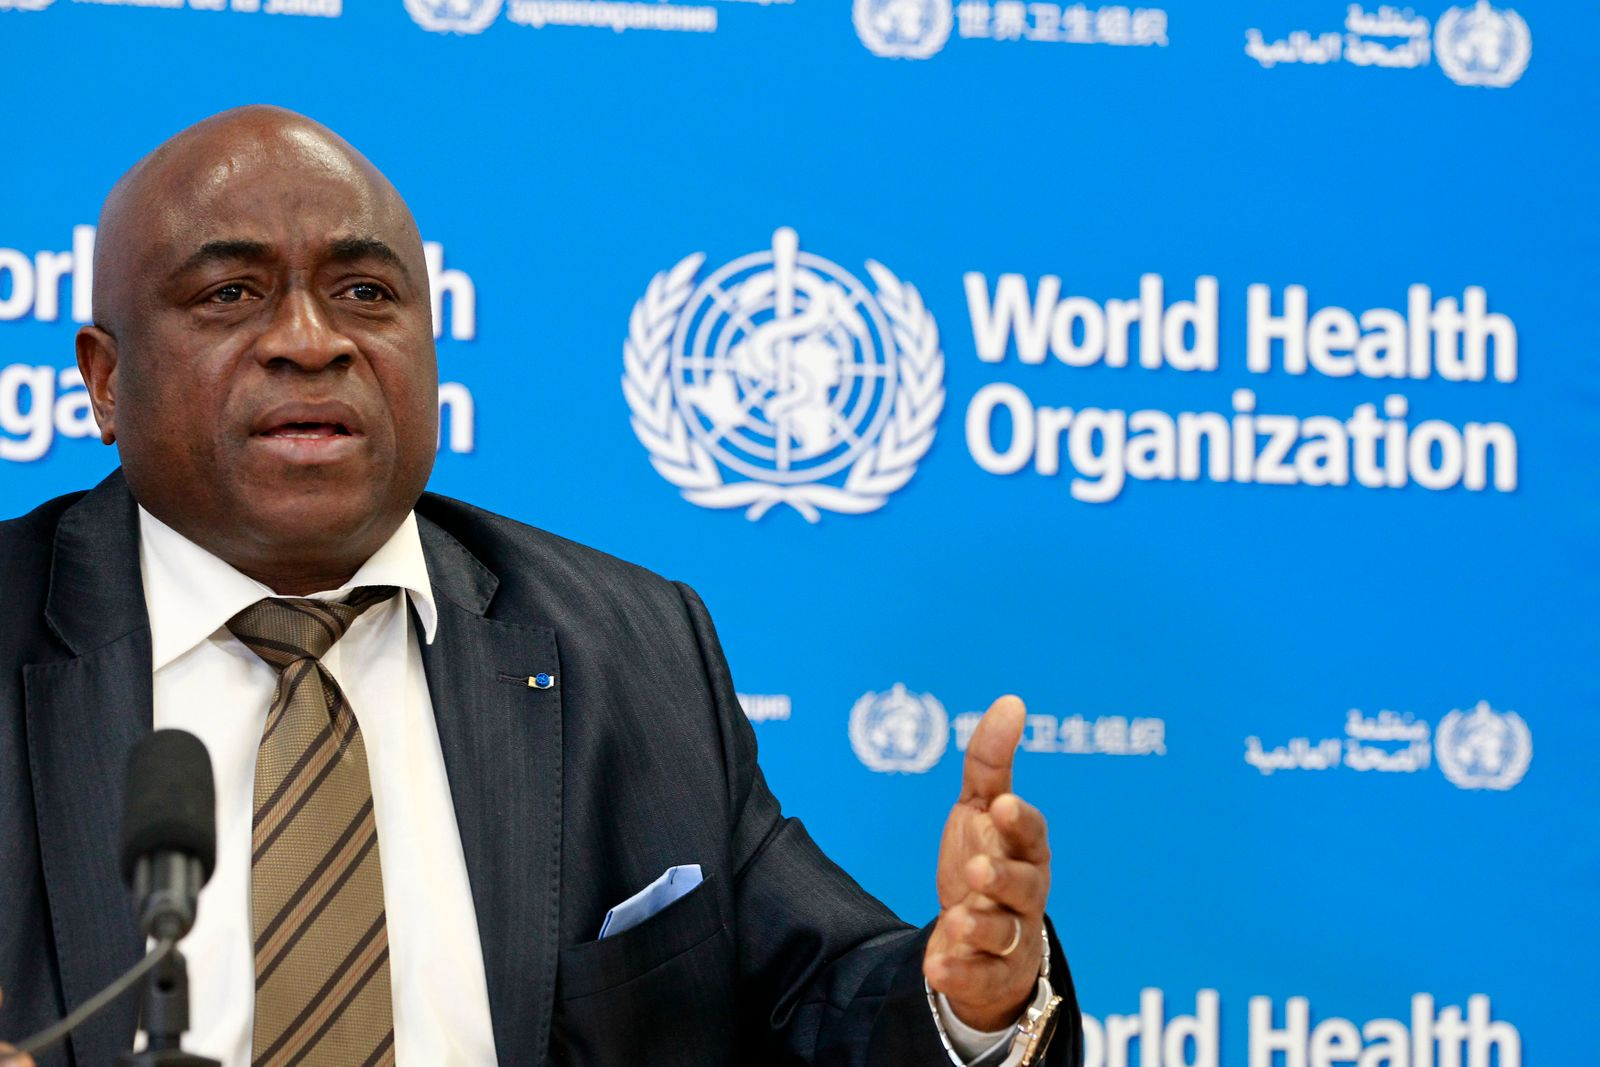 Guinea's Minister of Health Lamah speaks during WHO Virtual Press Conference in Geneva